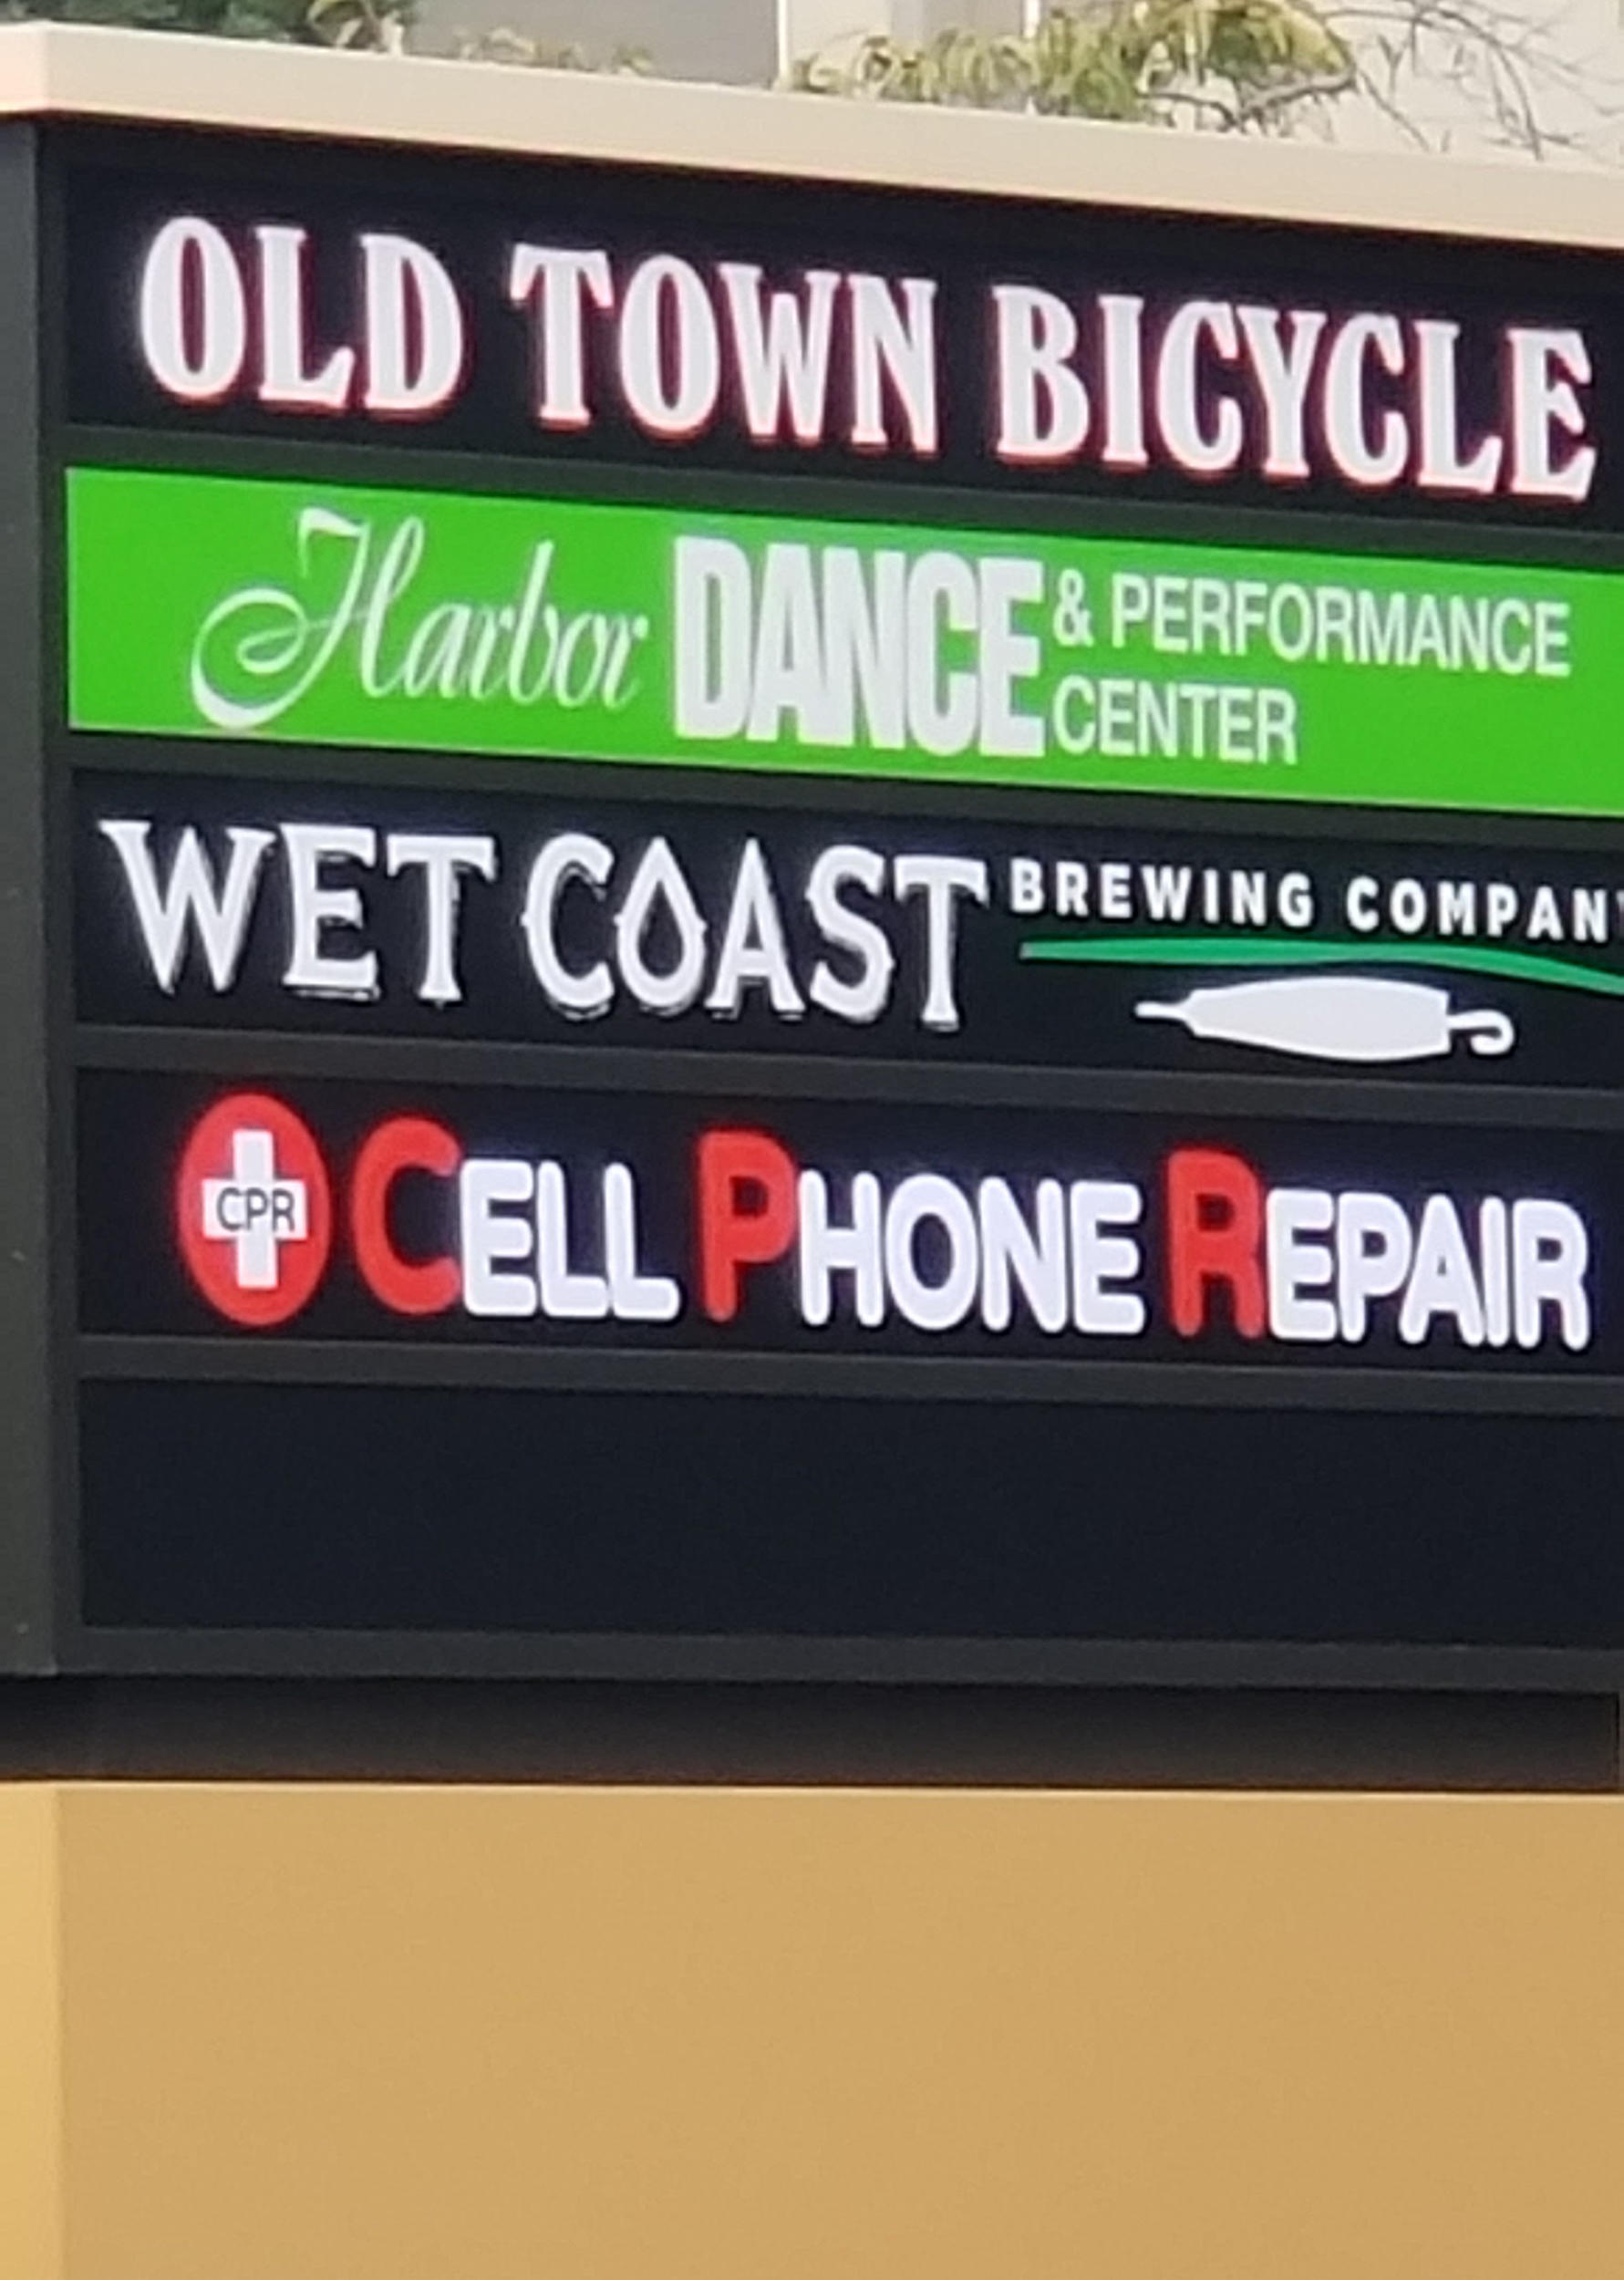 CPR Cell Phone Repair Gig Harbor image 4